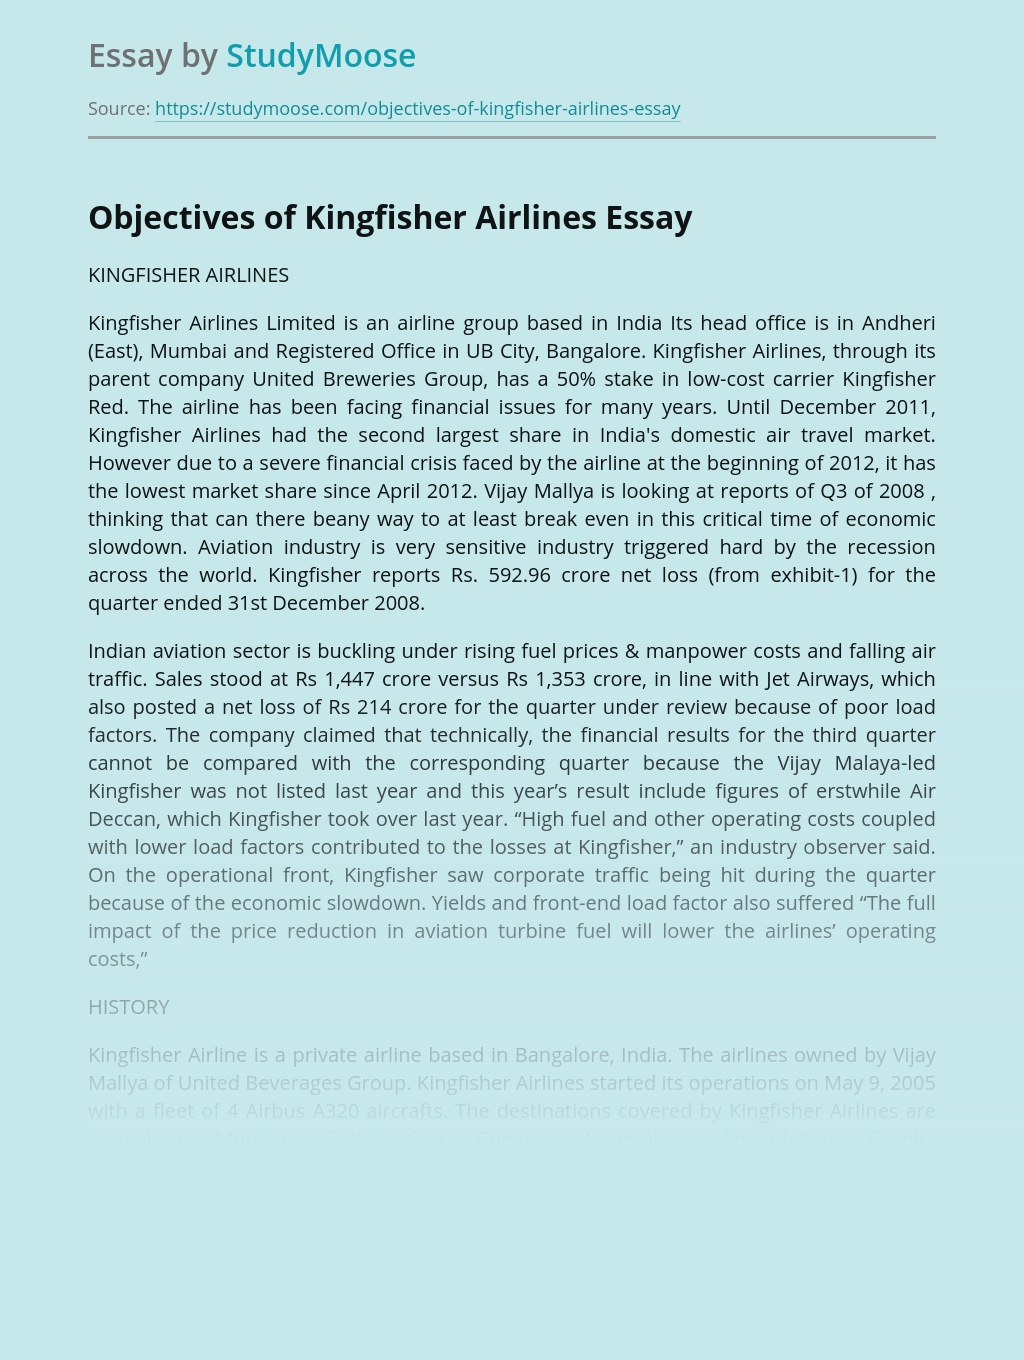 Objectives of Kingfisher Airlines